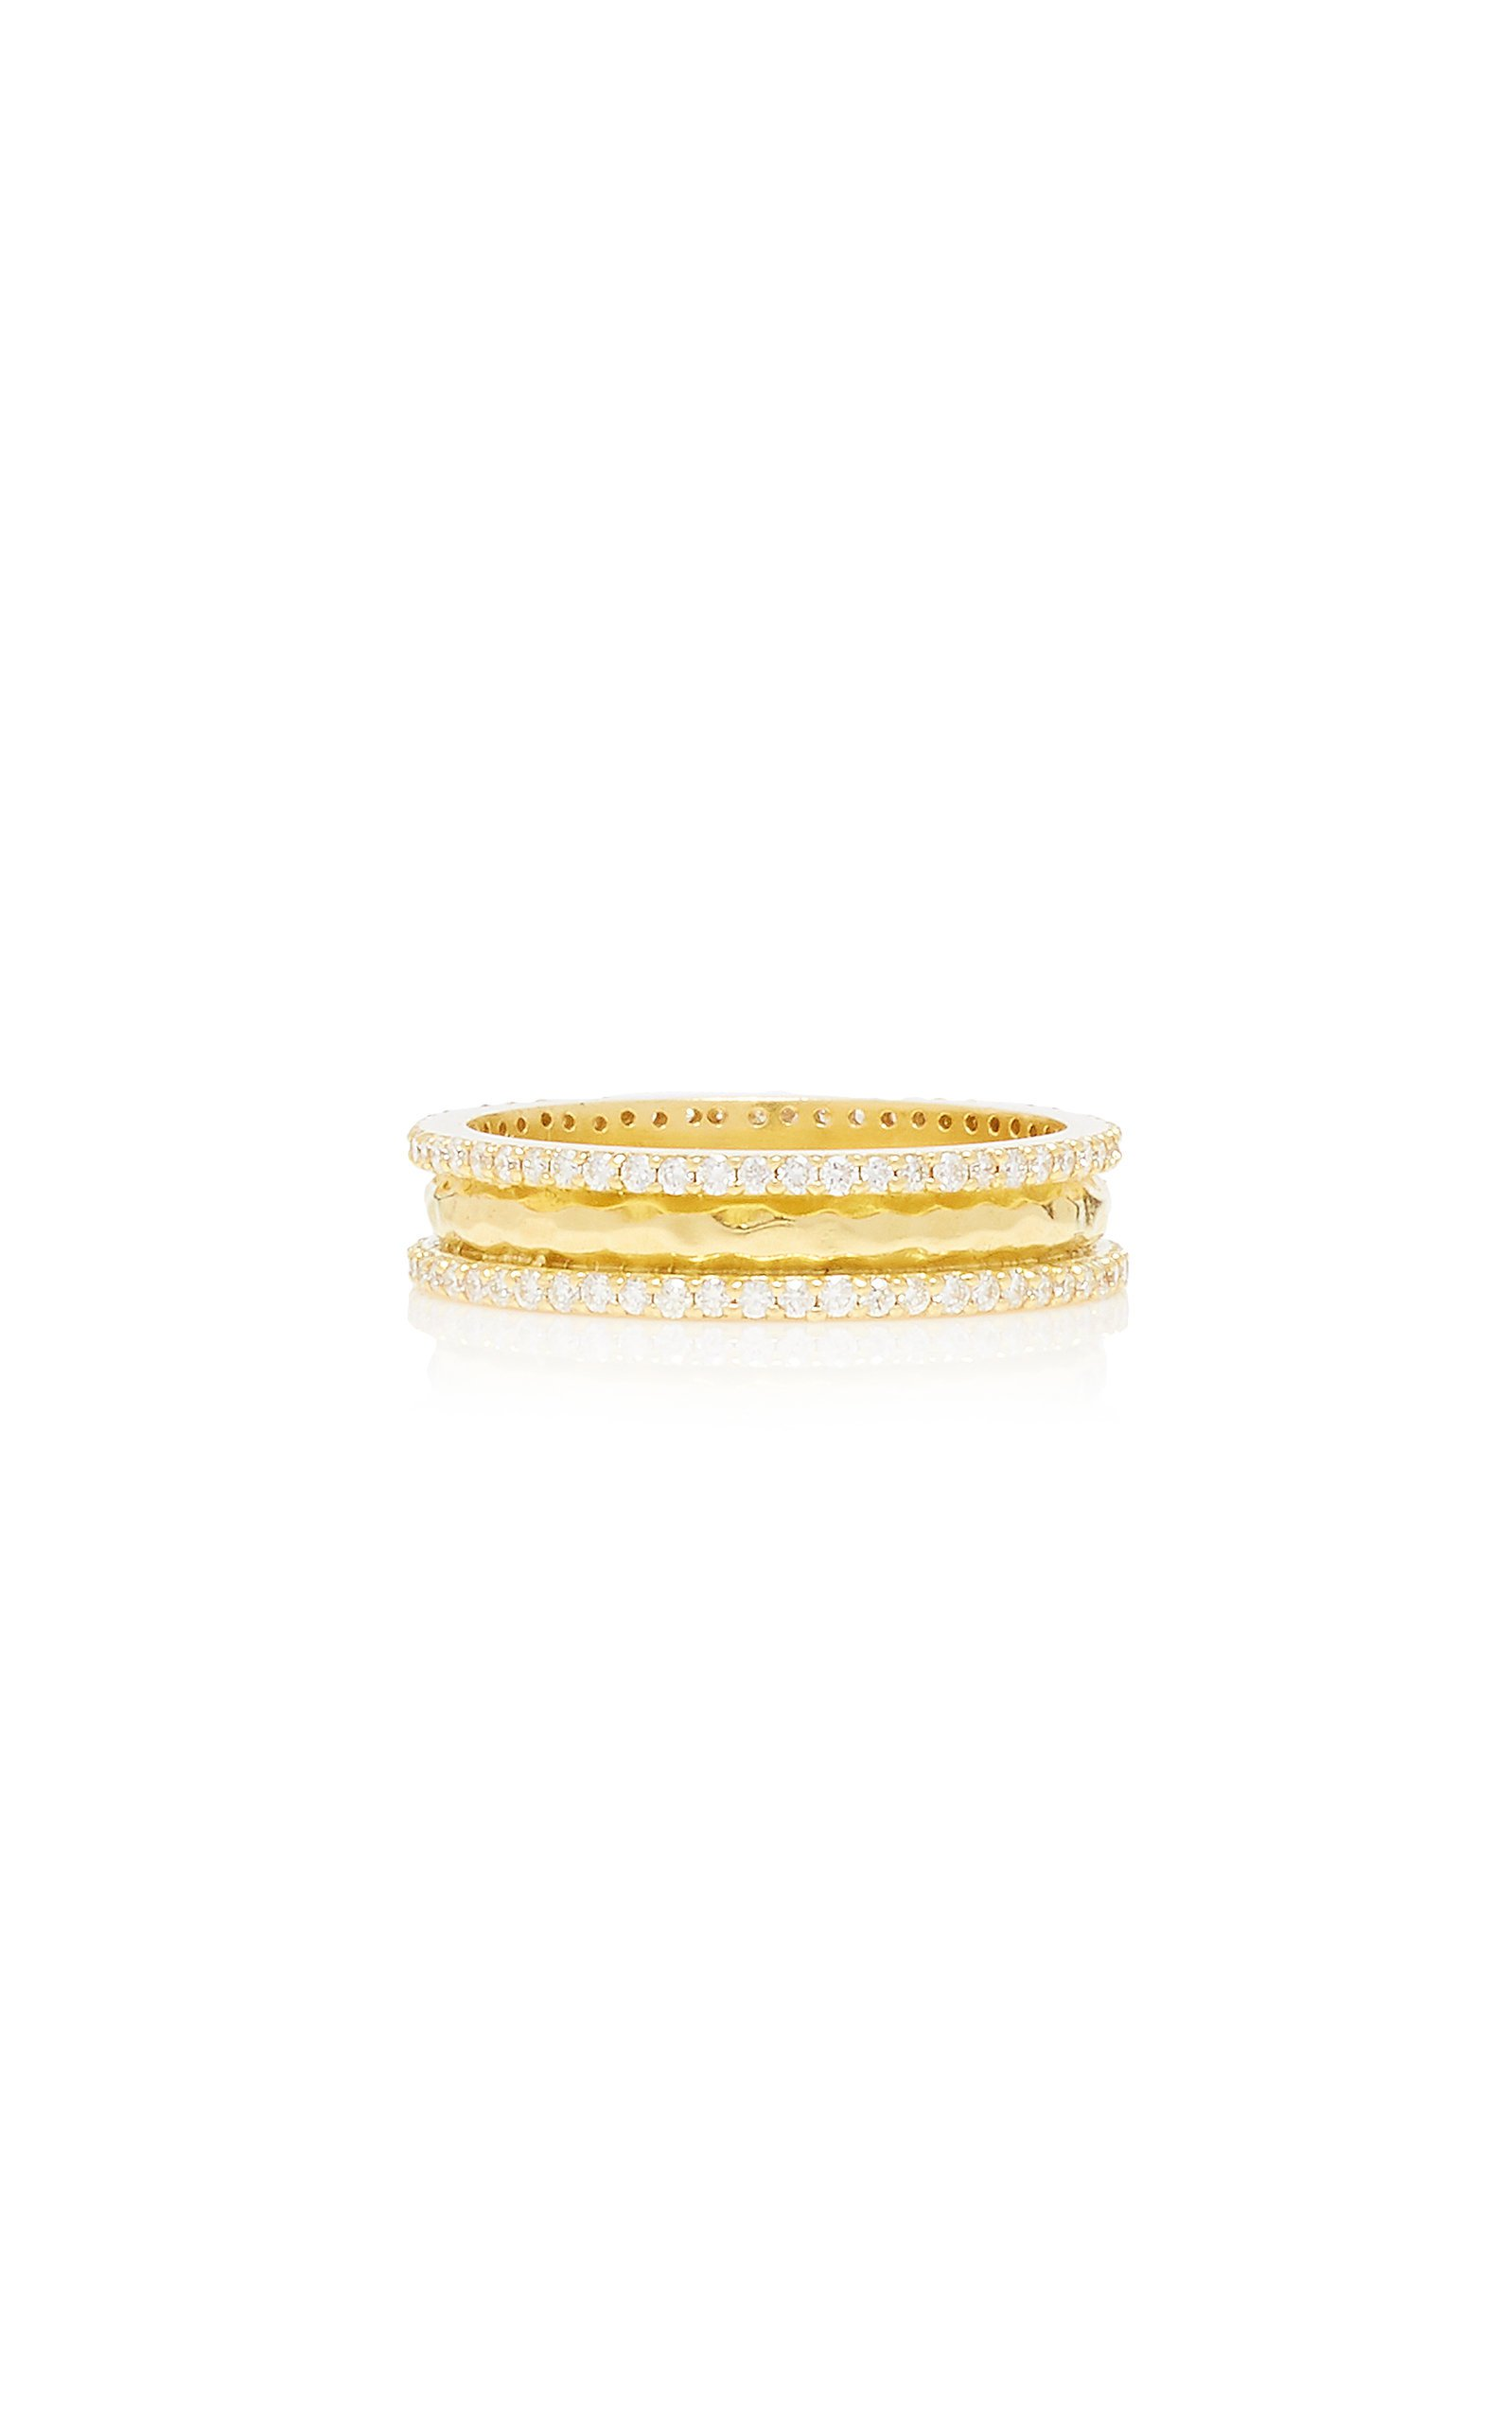 Amrapali Chandni 18K Gold and Diamond Ring Size: 6